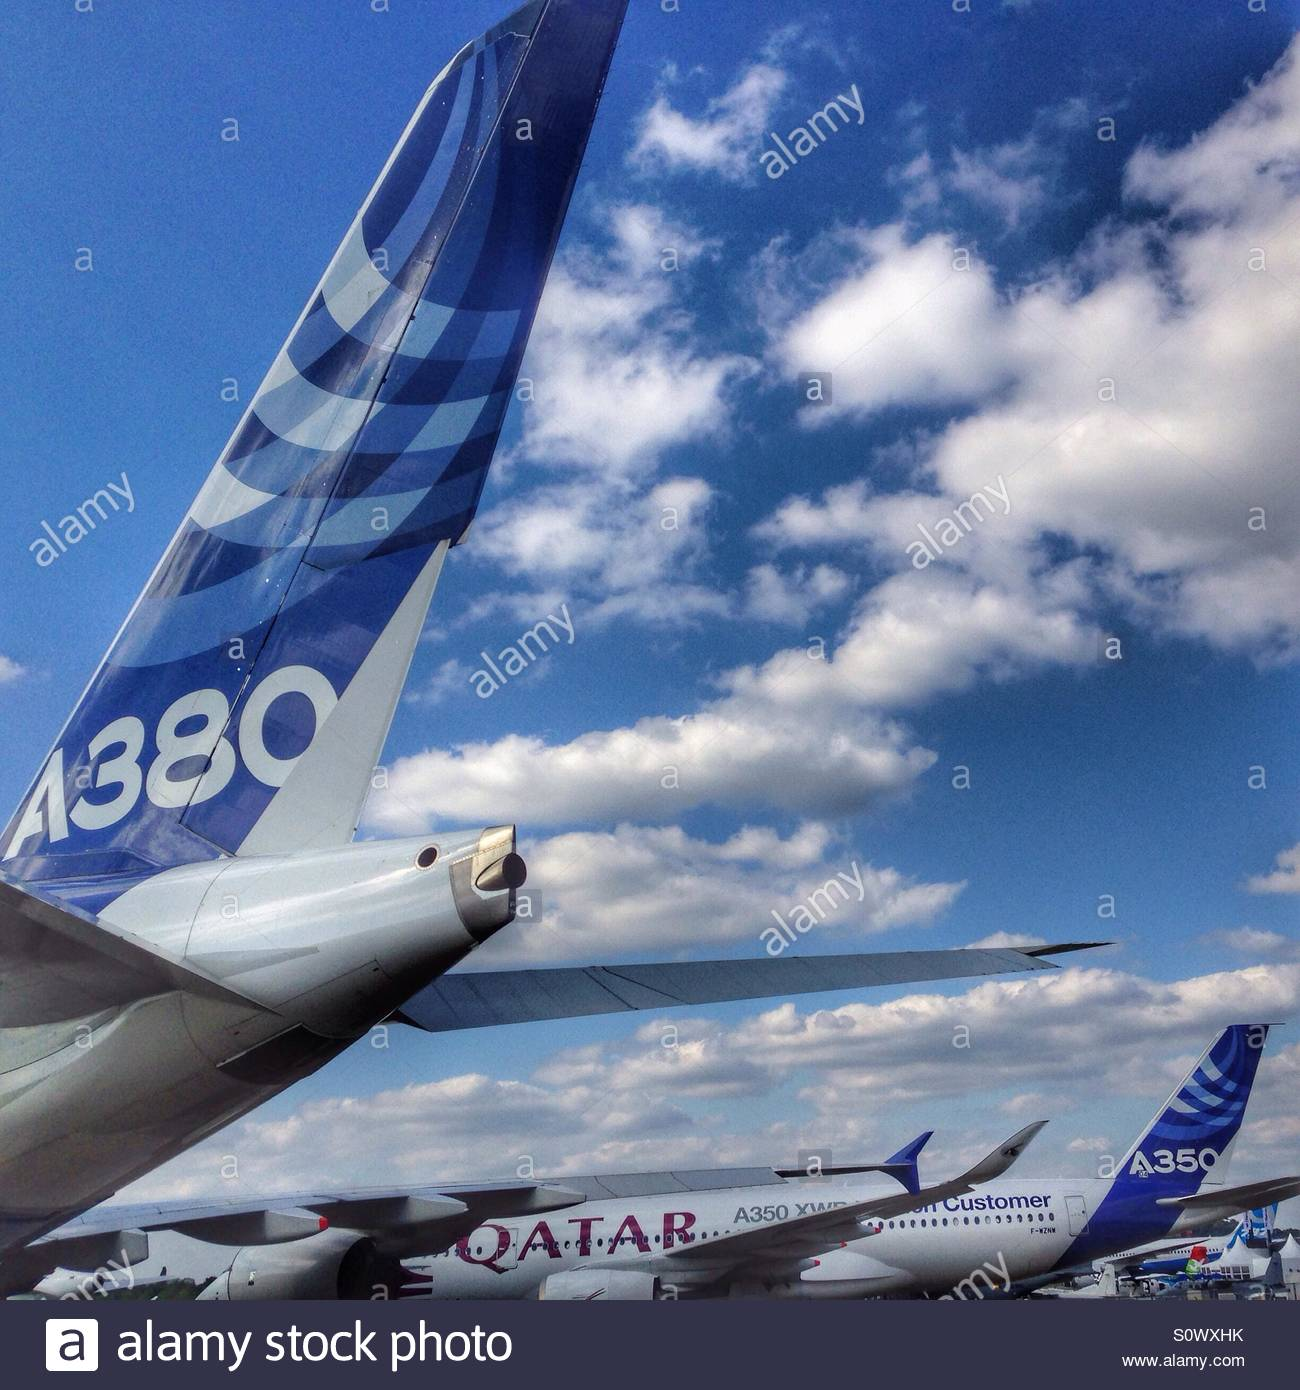 Airbus A380 airliner with the first Airbus A350 for Qatar airways 1300x1390